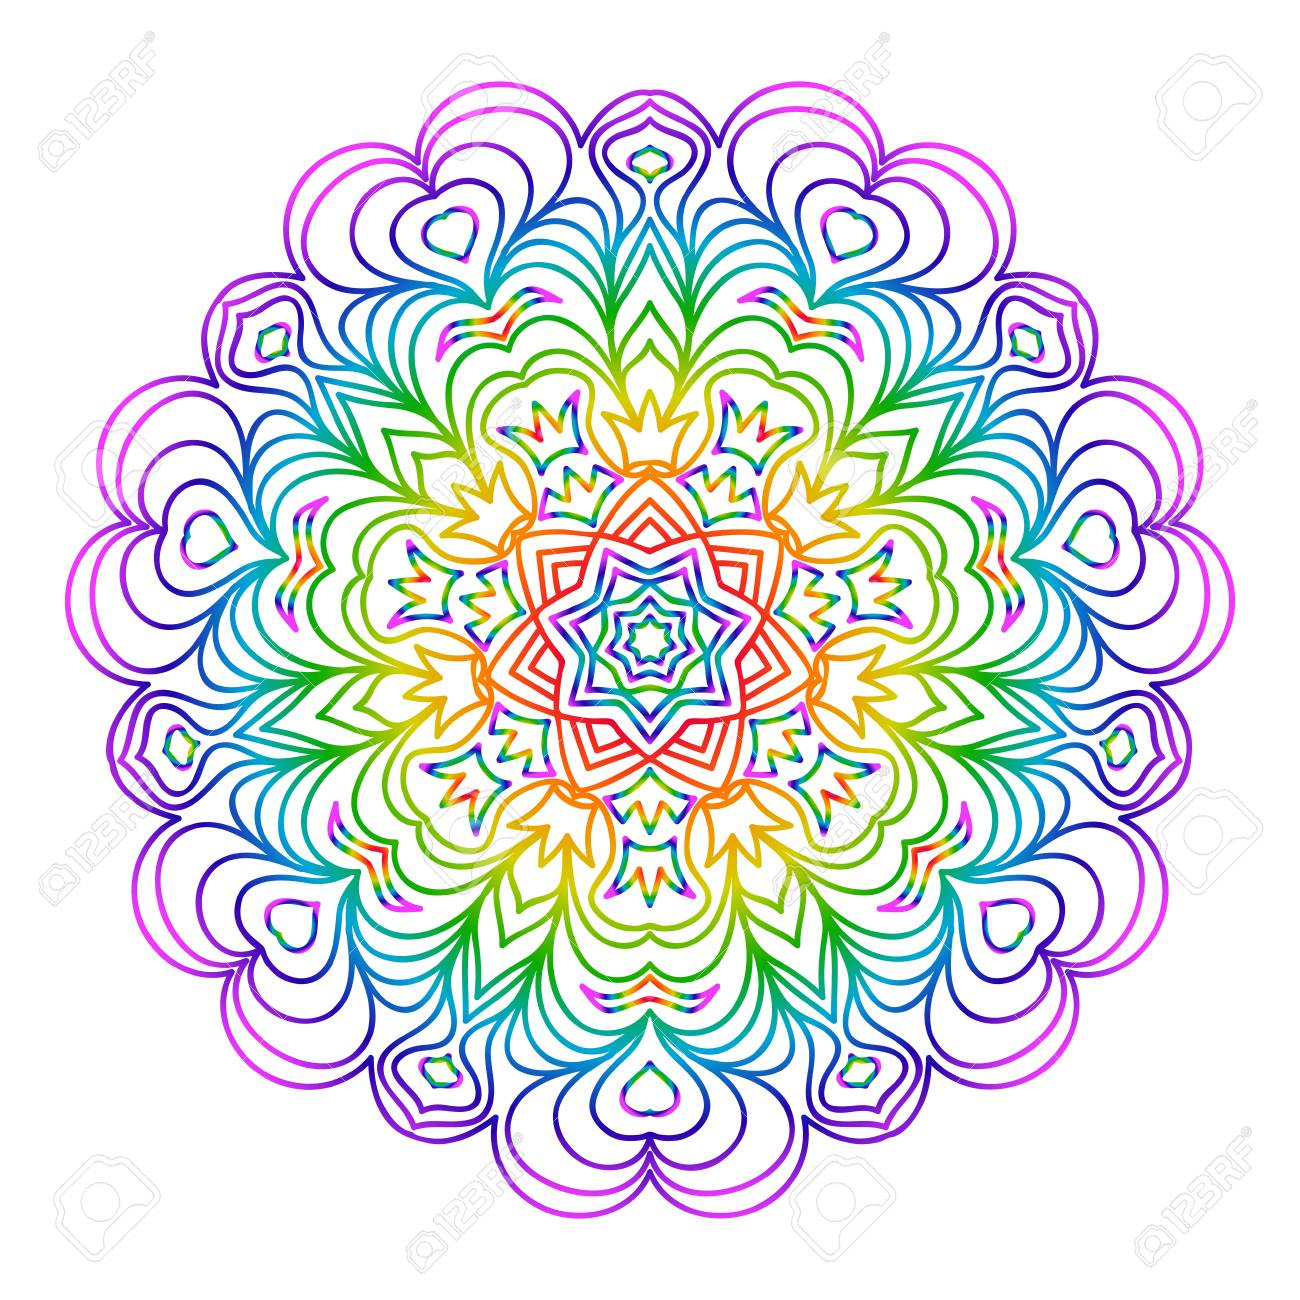 mandala for relaxation rainbow color illustration of rosette